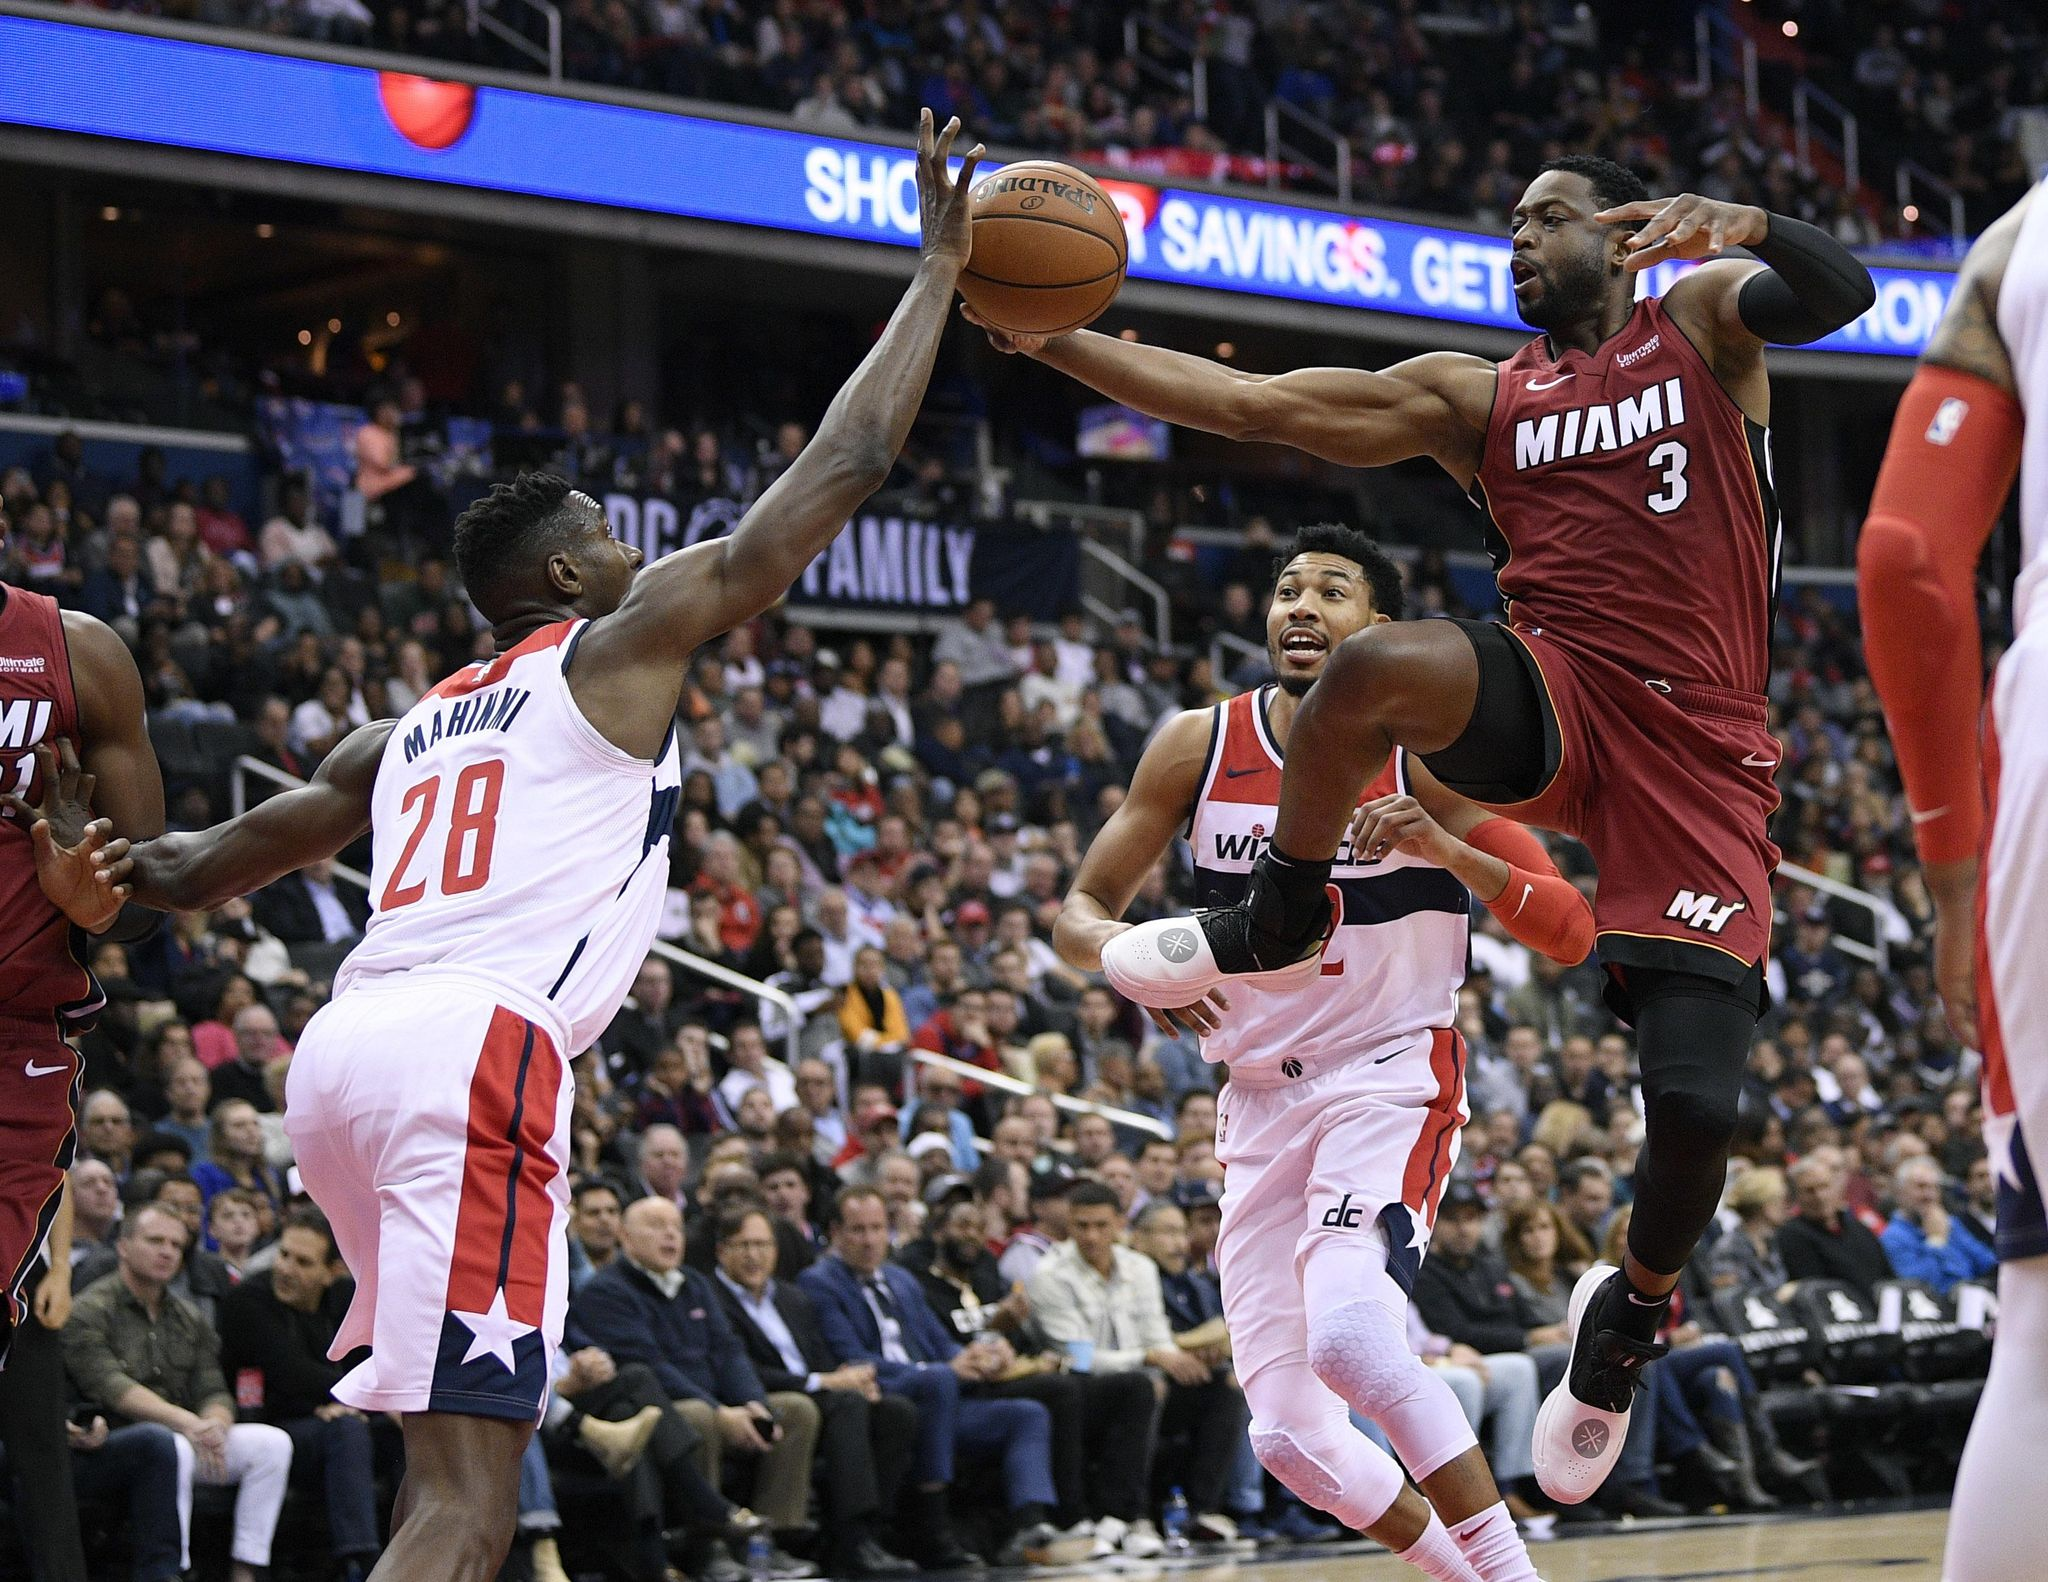 Olynyk's putback off Wade's miss lifts Heat past Wiz 113-112 - Washington Times